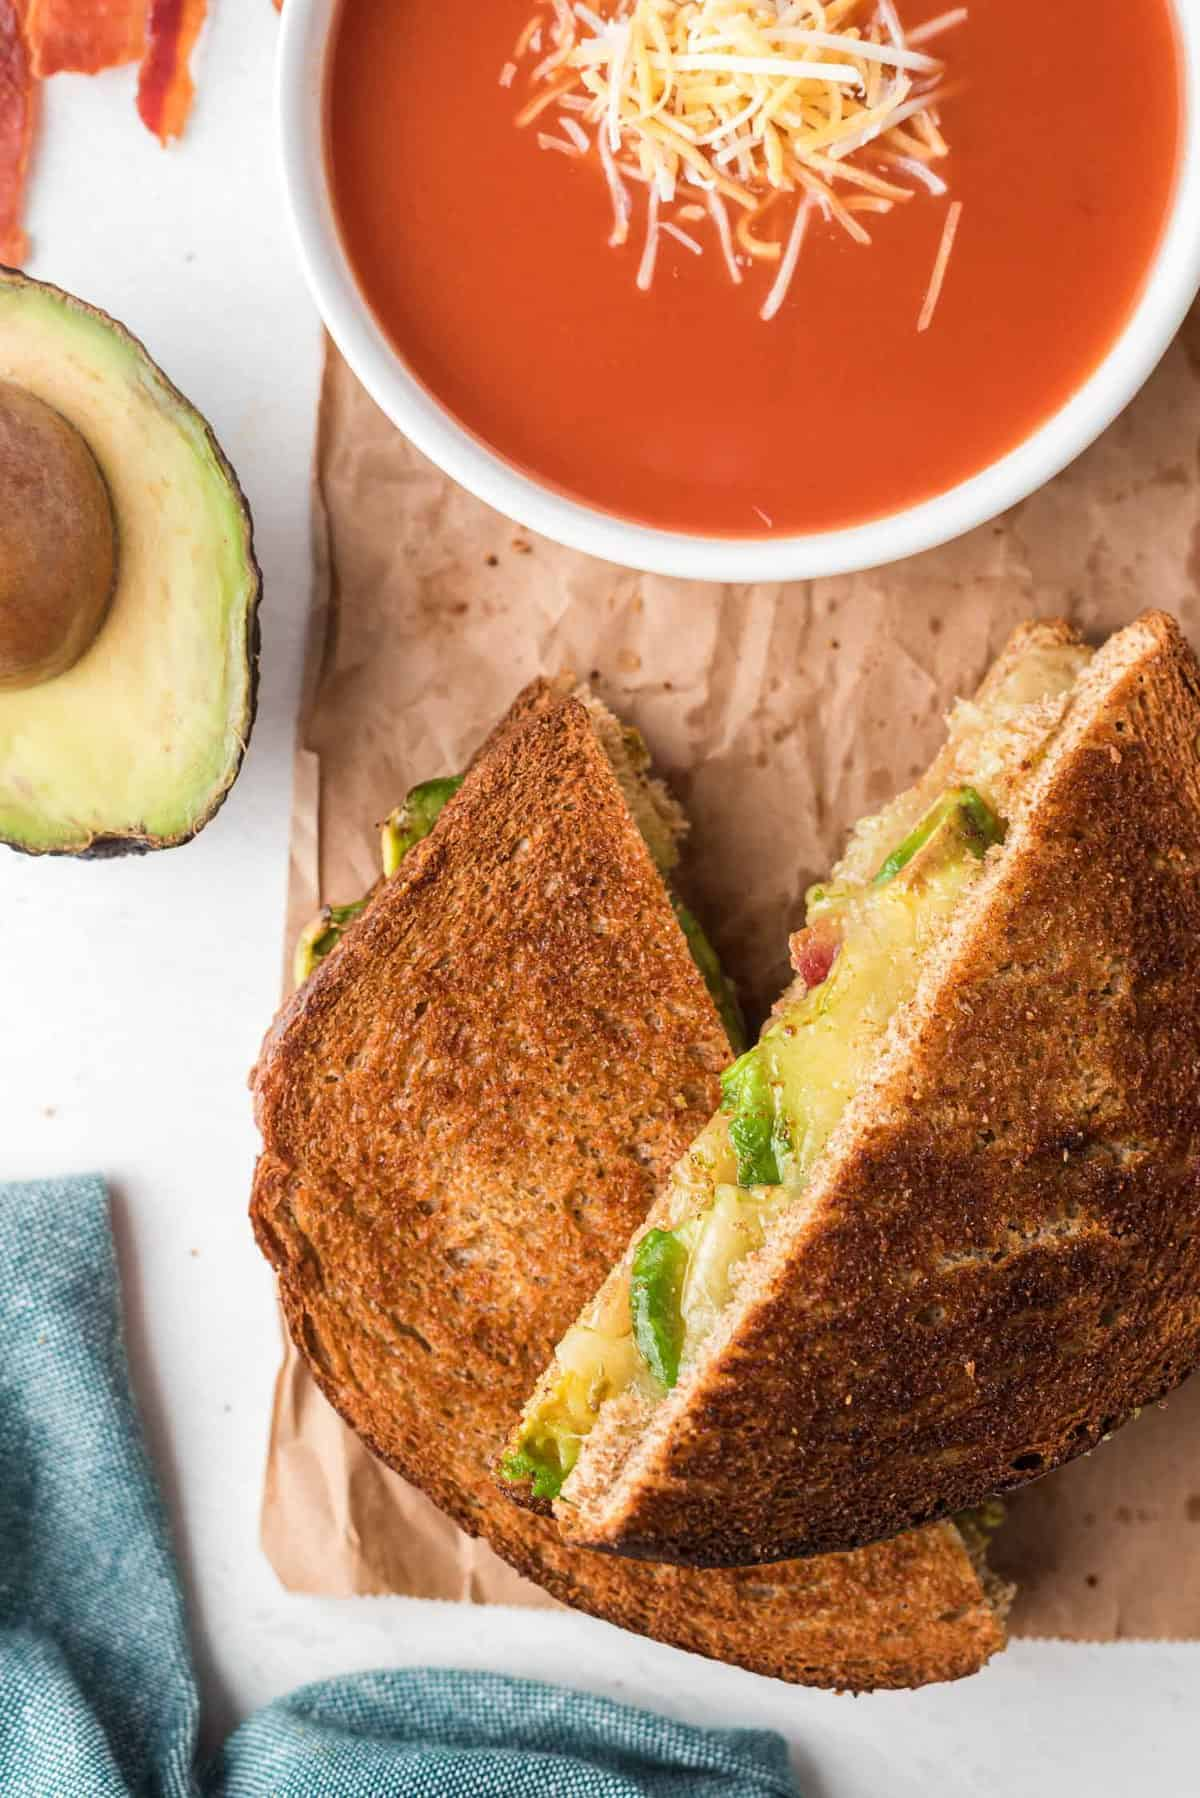 Sandwich halves that halve been toasted, filled with avocado, cheese, and bacon, served with tomato soup.